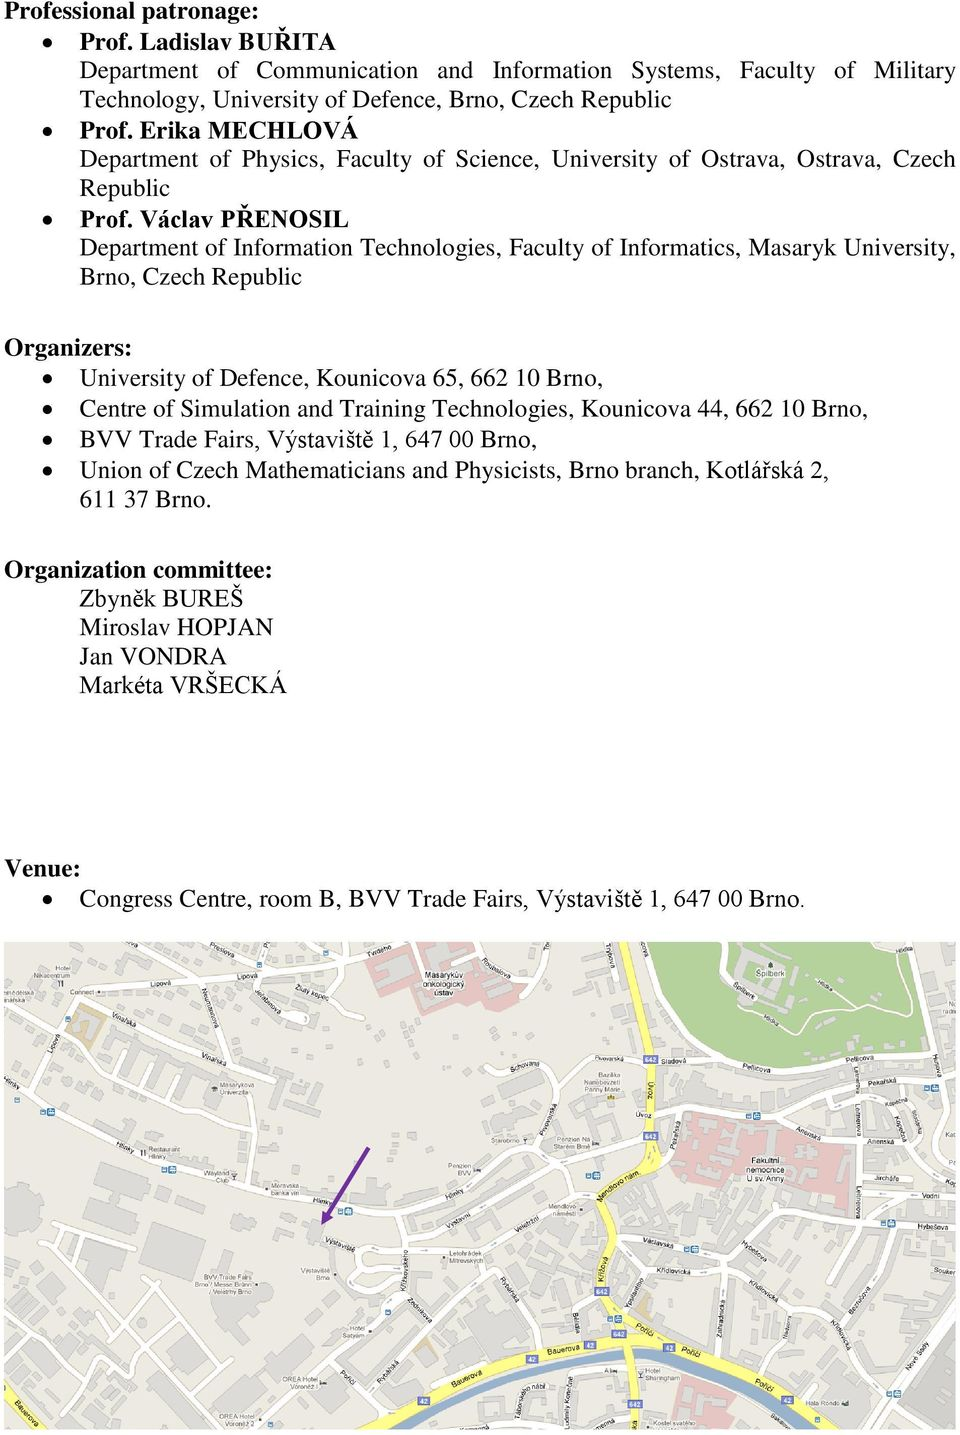 Václav PŘENOSIL Department of Information Technologies, Faculty of Informatics, Masaryk University, Brno, Czech Republic Organizers: University of Defence, Kounicova 65, 662 10 Brno, Centre of